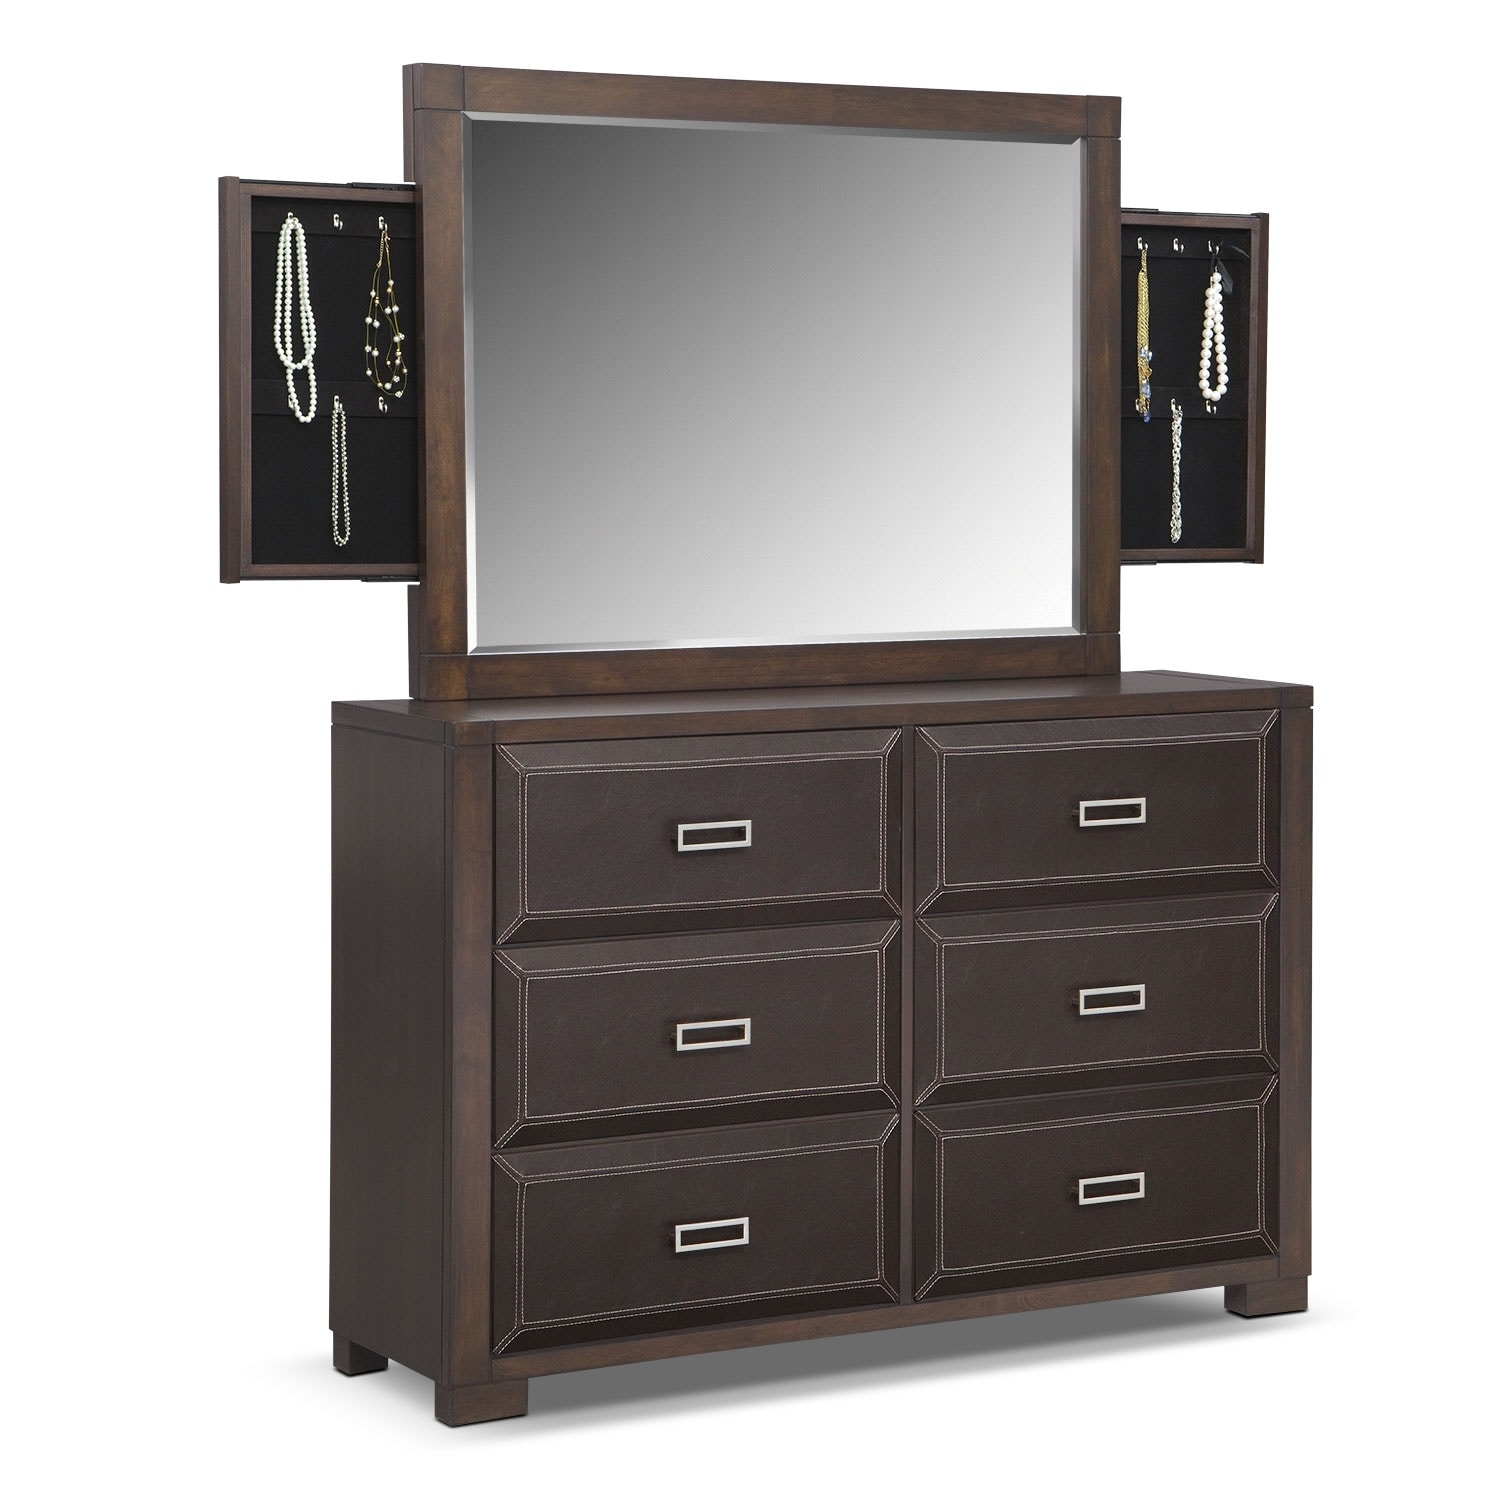 Bedroom Furniture - Mason Dresser & Storage Mirror